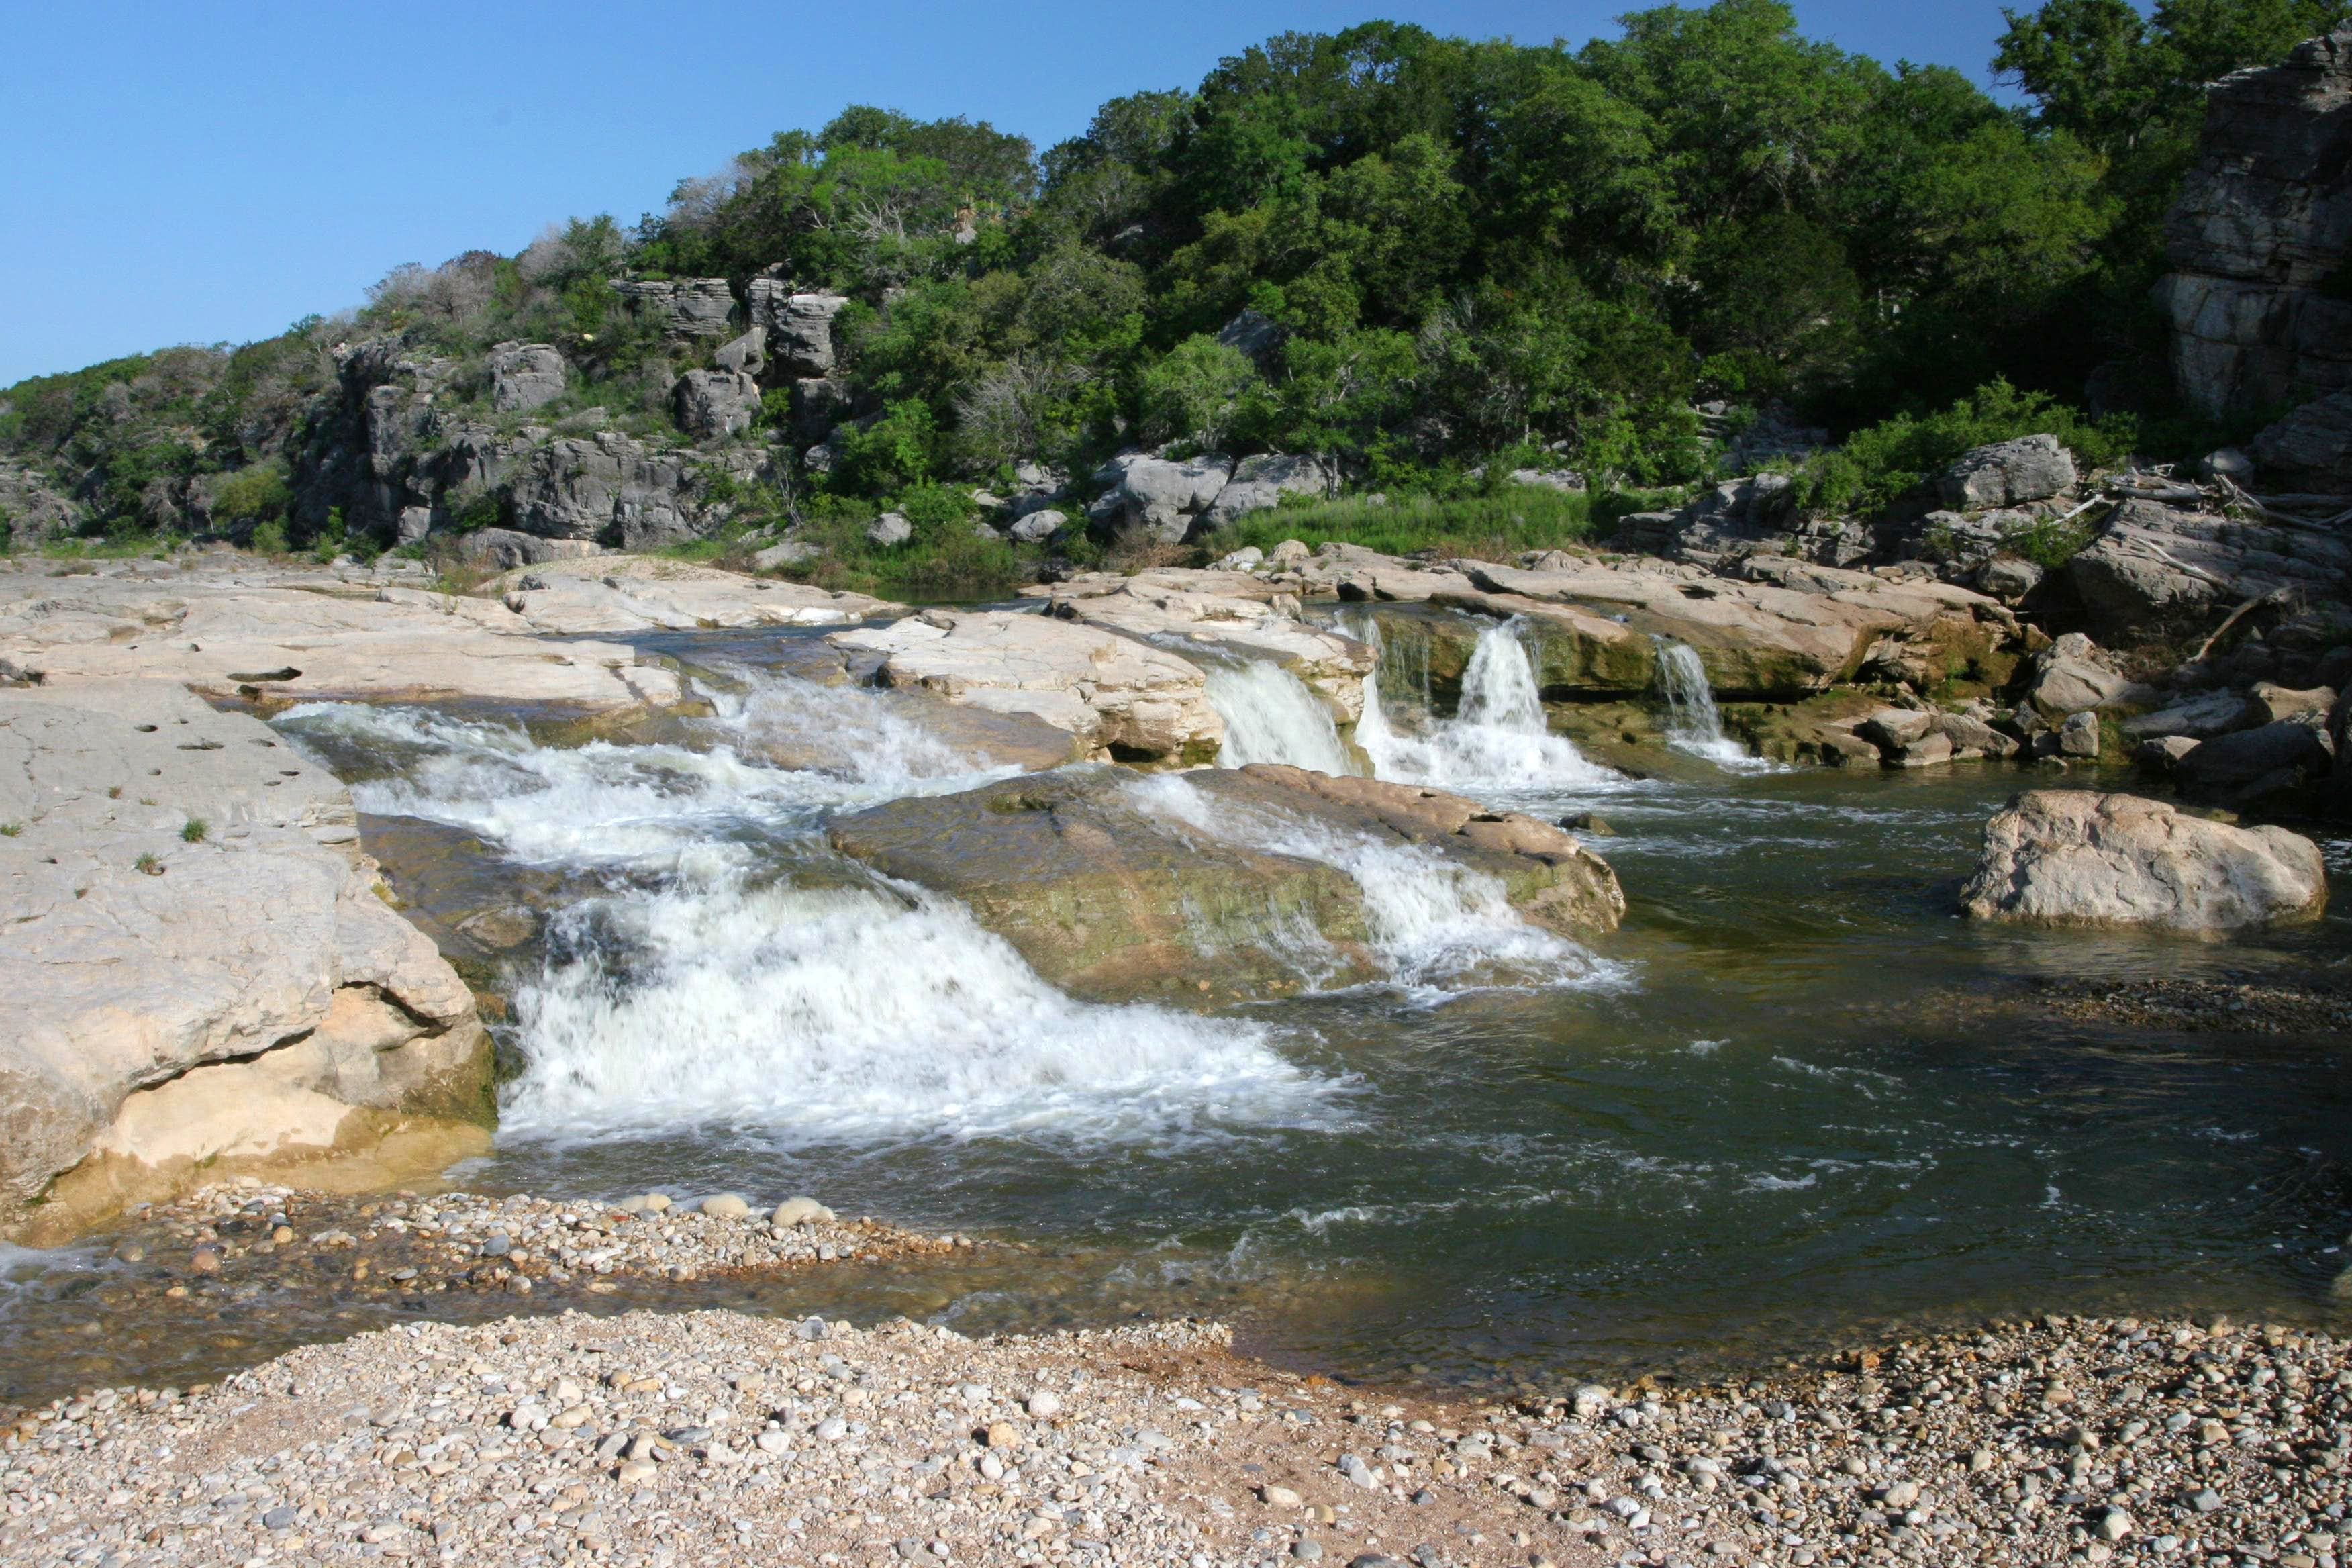 Pedernales River Canyon